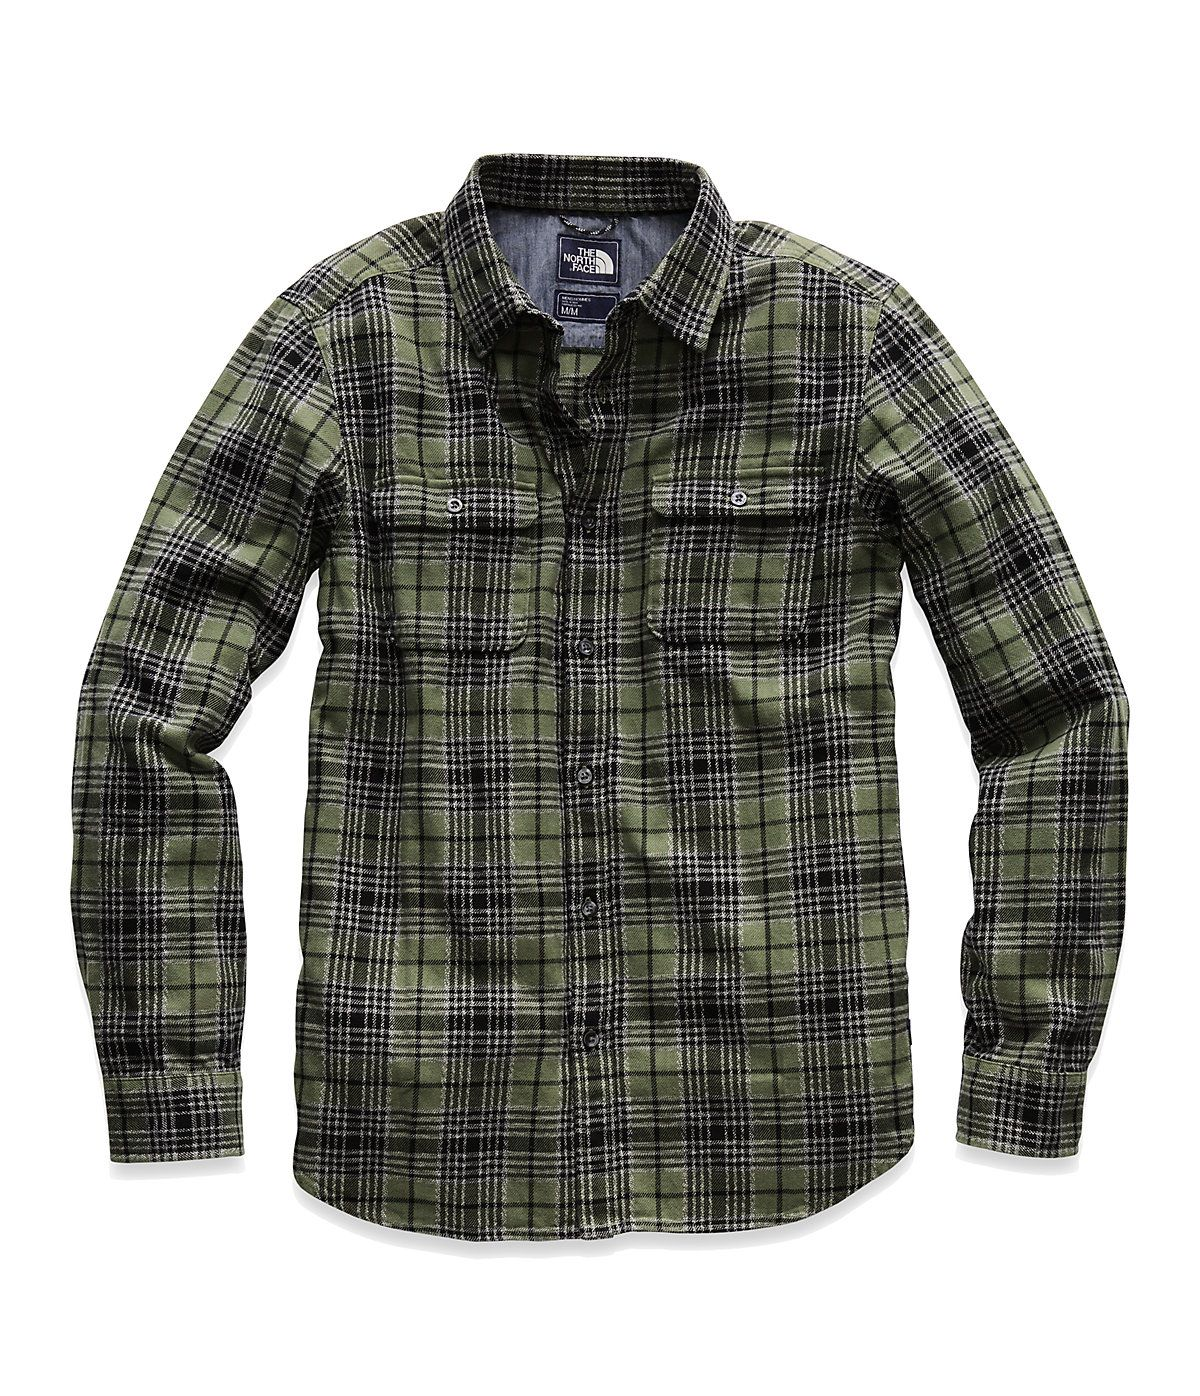 90087ef2b The North Face Men's Long Sleeve Arroyo Flannel Shirt in 2019 ...